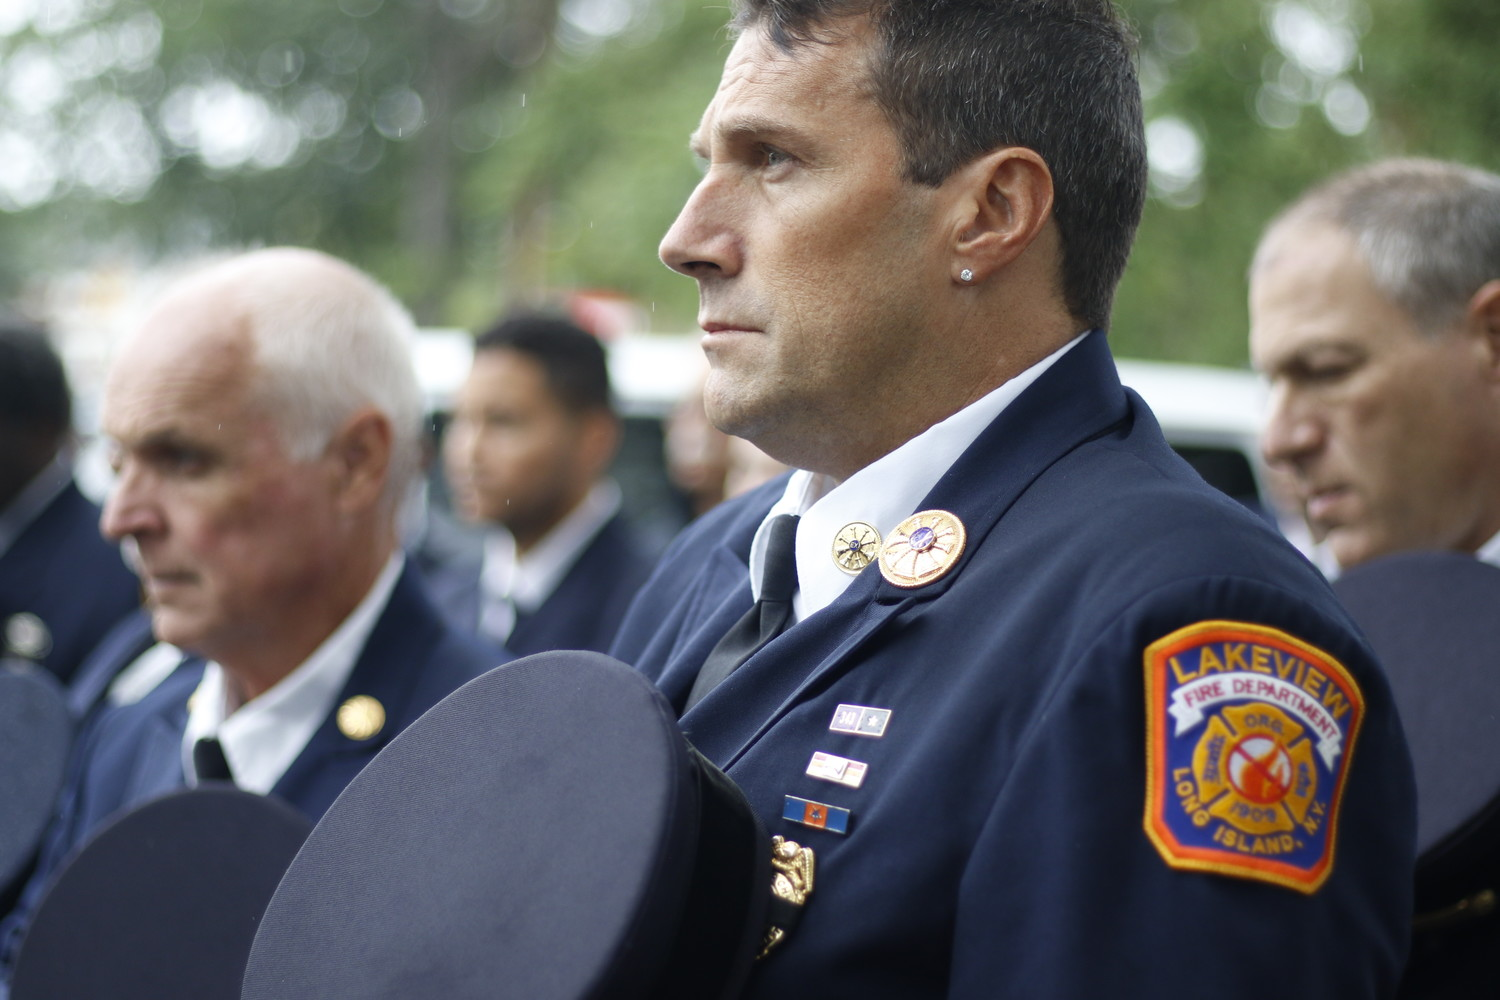 Lakeview Fire Department Ex-Chief Vic Cantelmo was one of several firefighters that honored victims of 9/11.